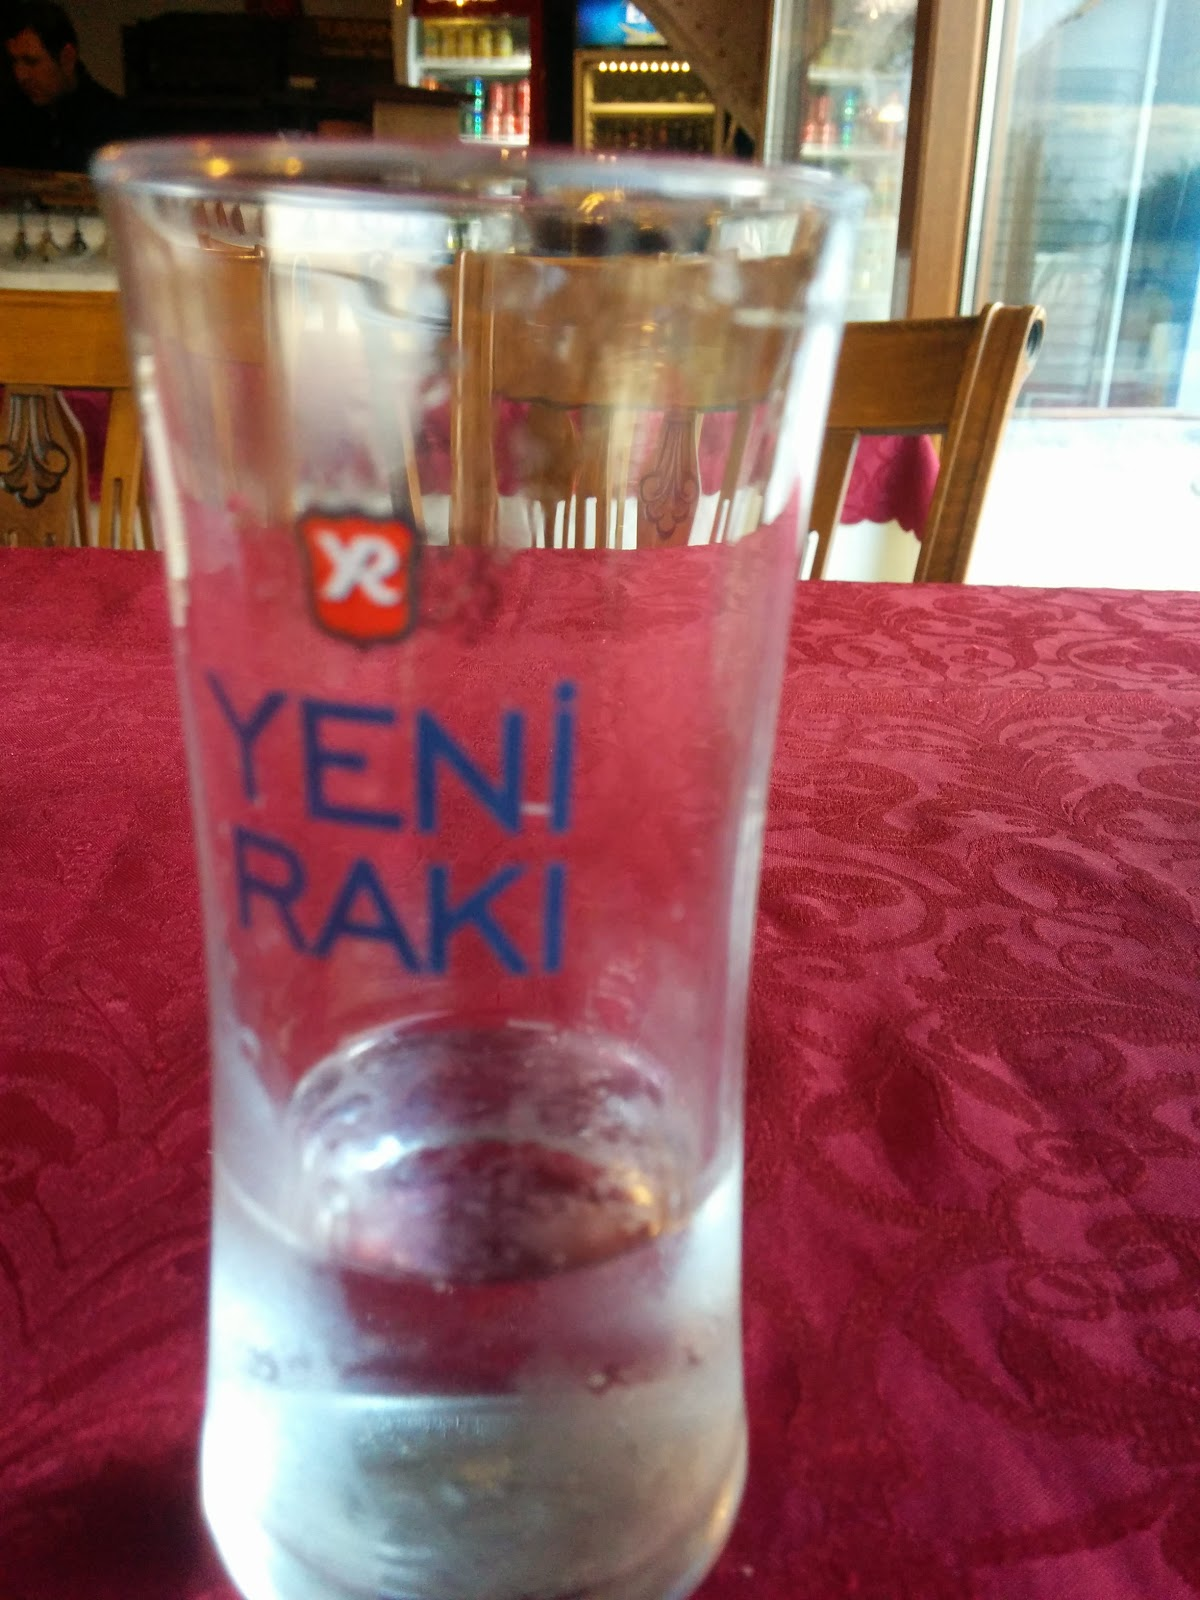 Raki Sofrasi - national pastime of Turkey